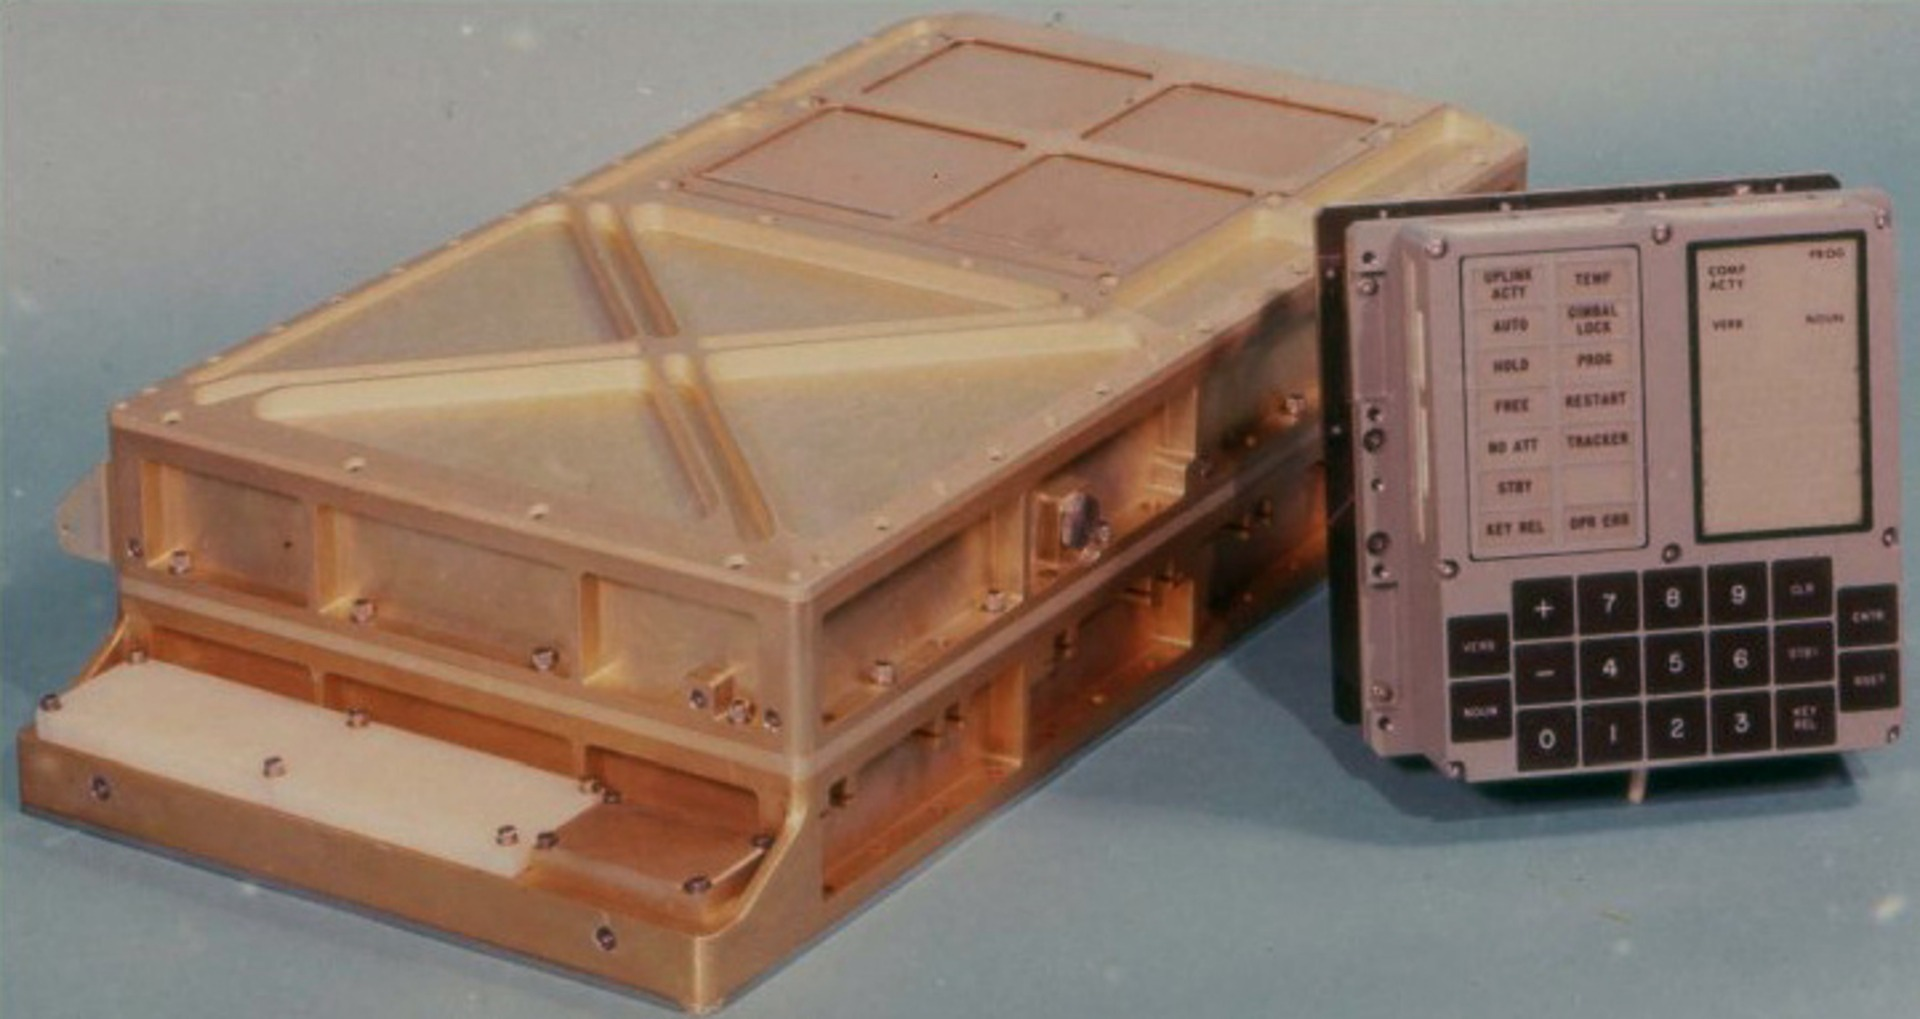 Apollo's brain: The computer that guided man to the Moon